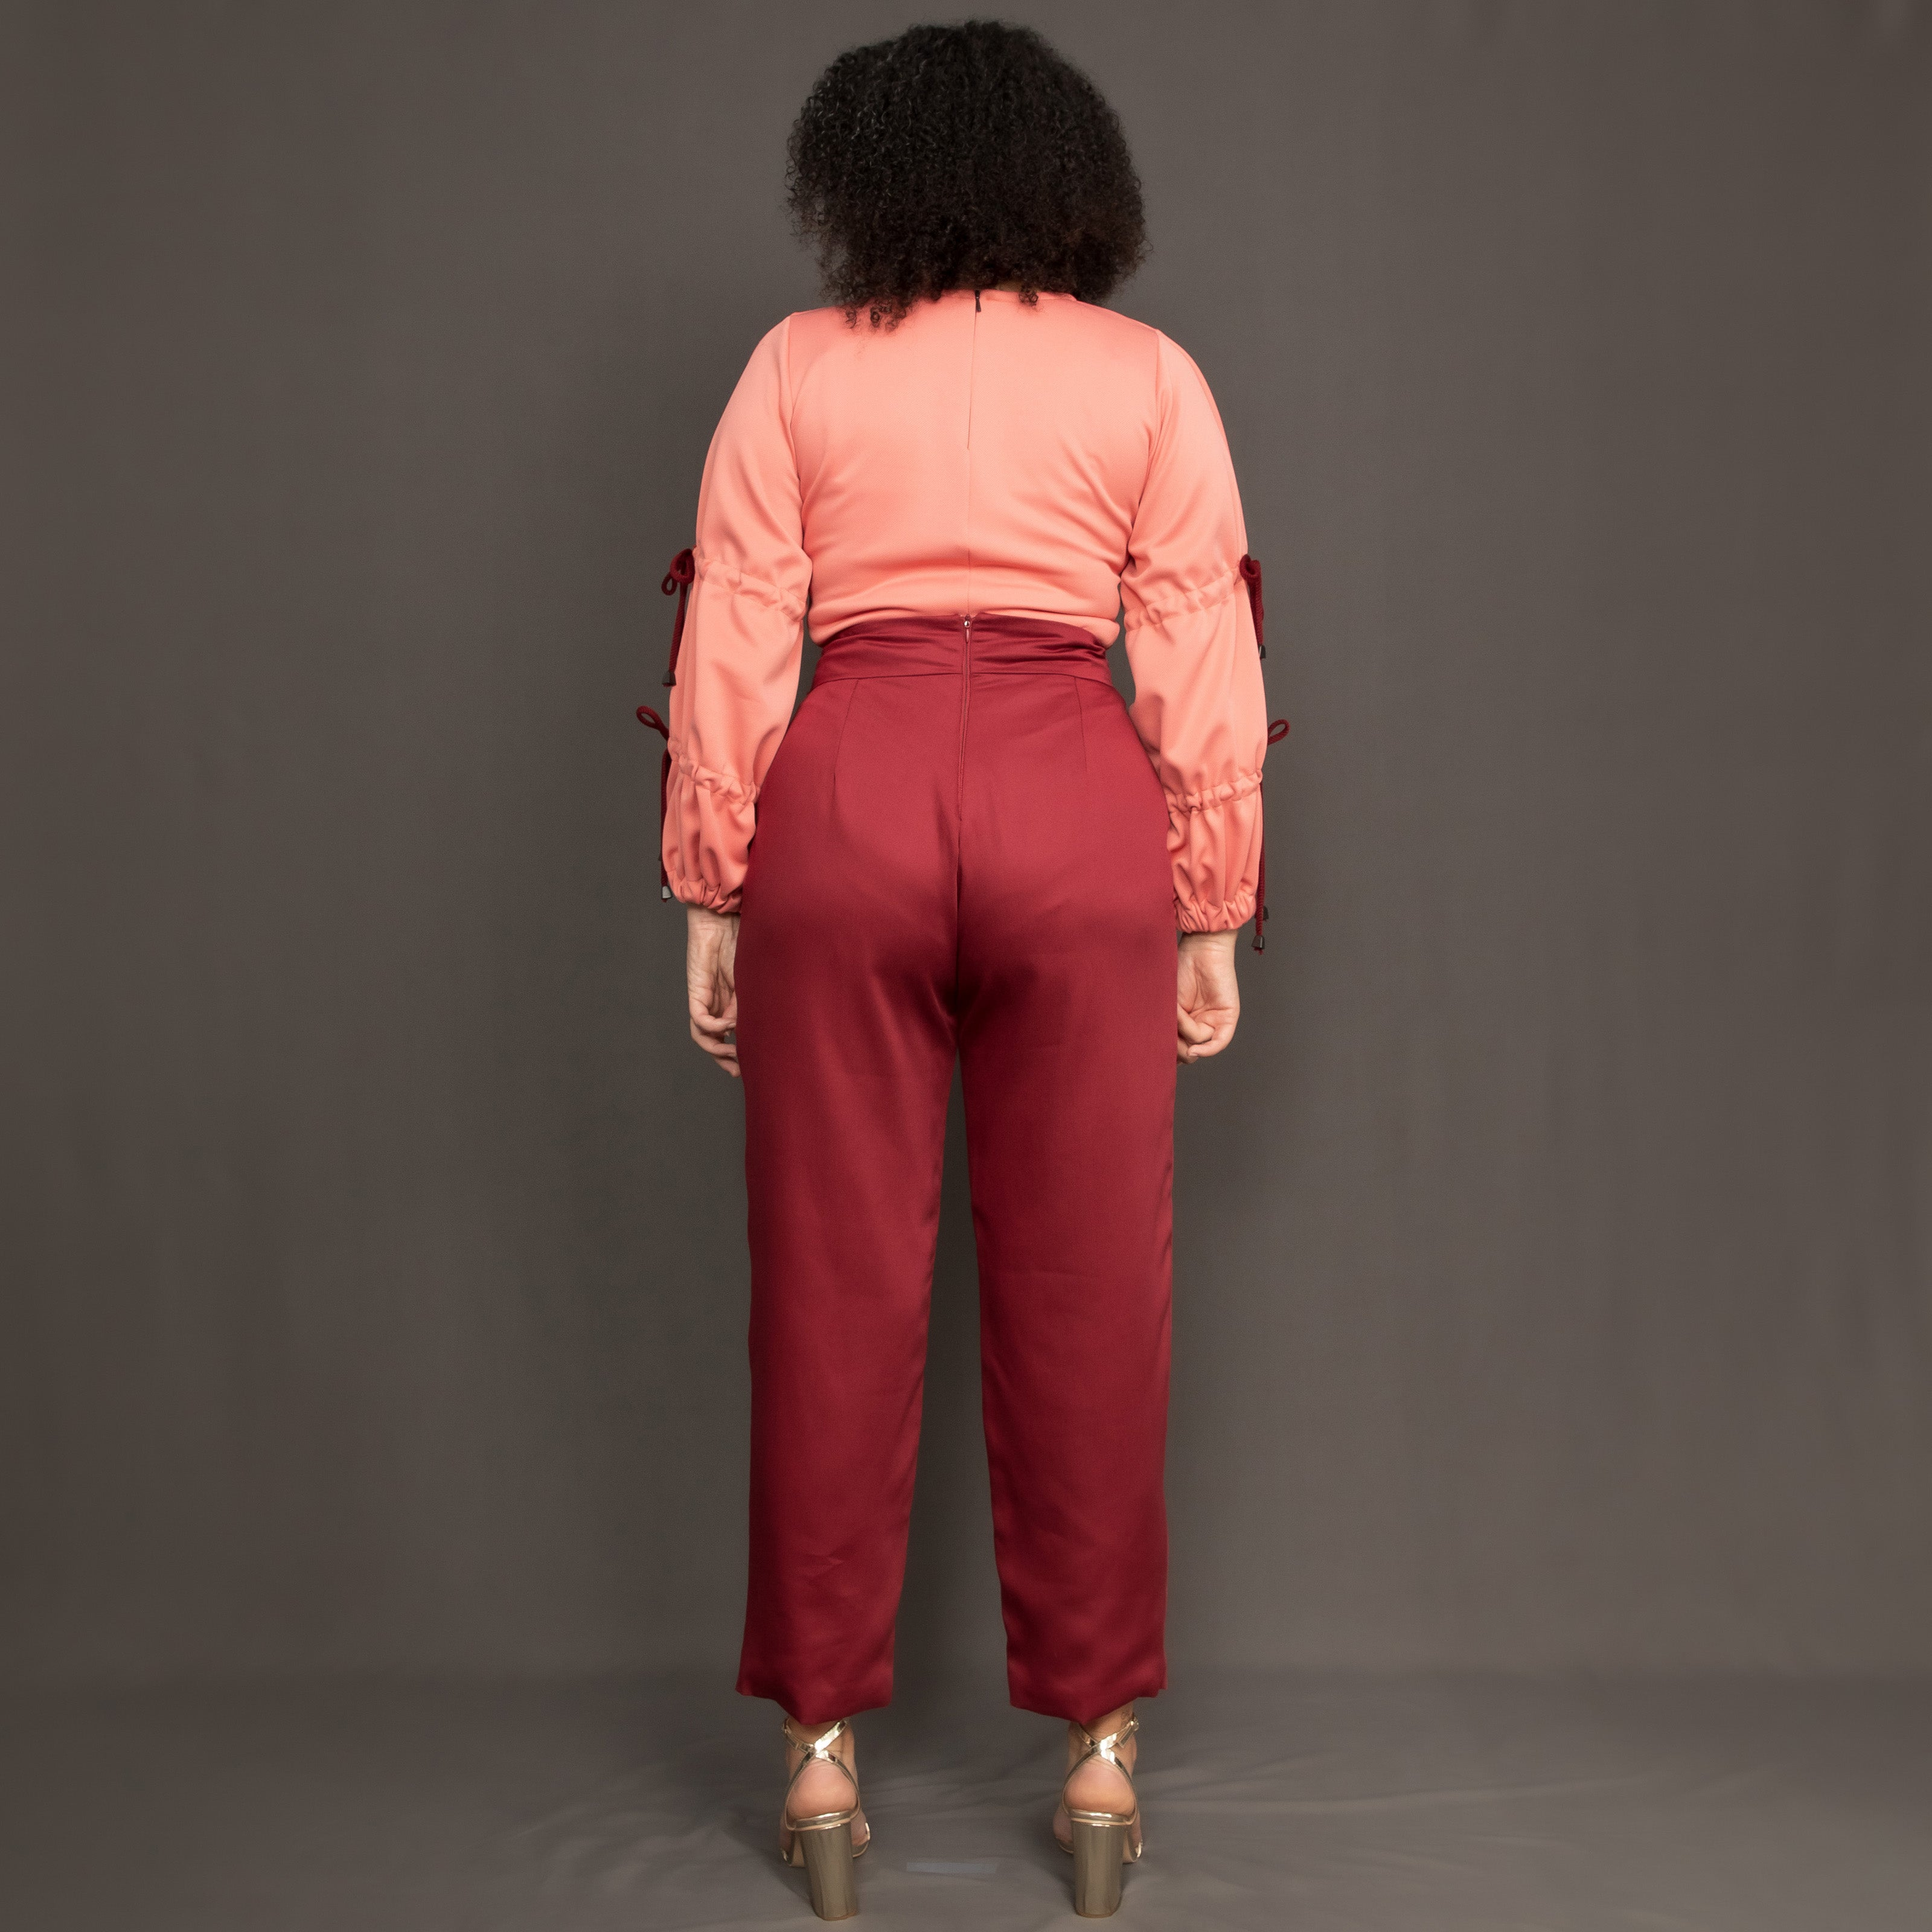 Model wearing high waist burgundy trousers and salmon pink long sleeve top by Kim Dave